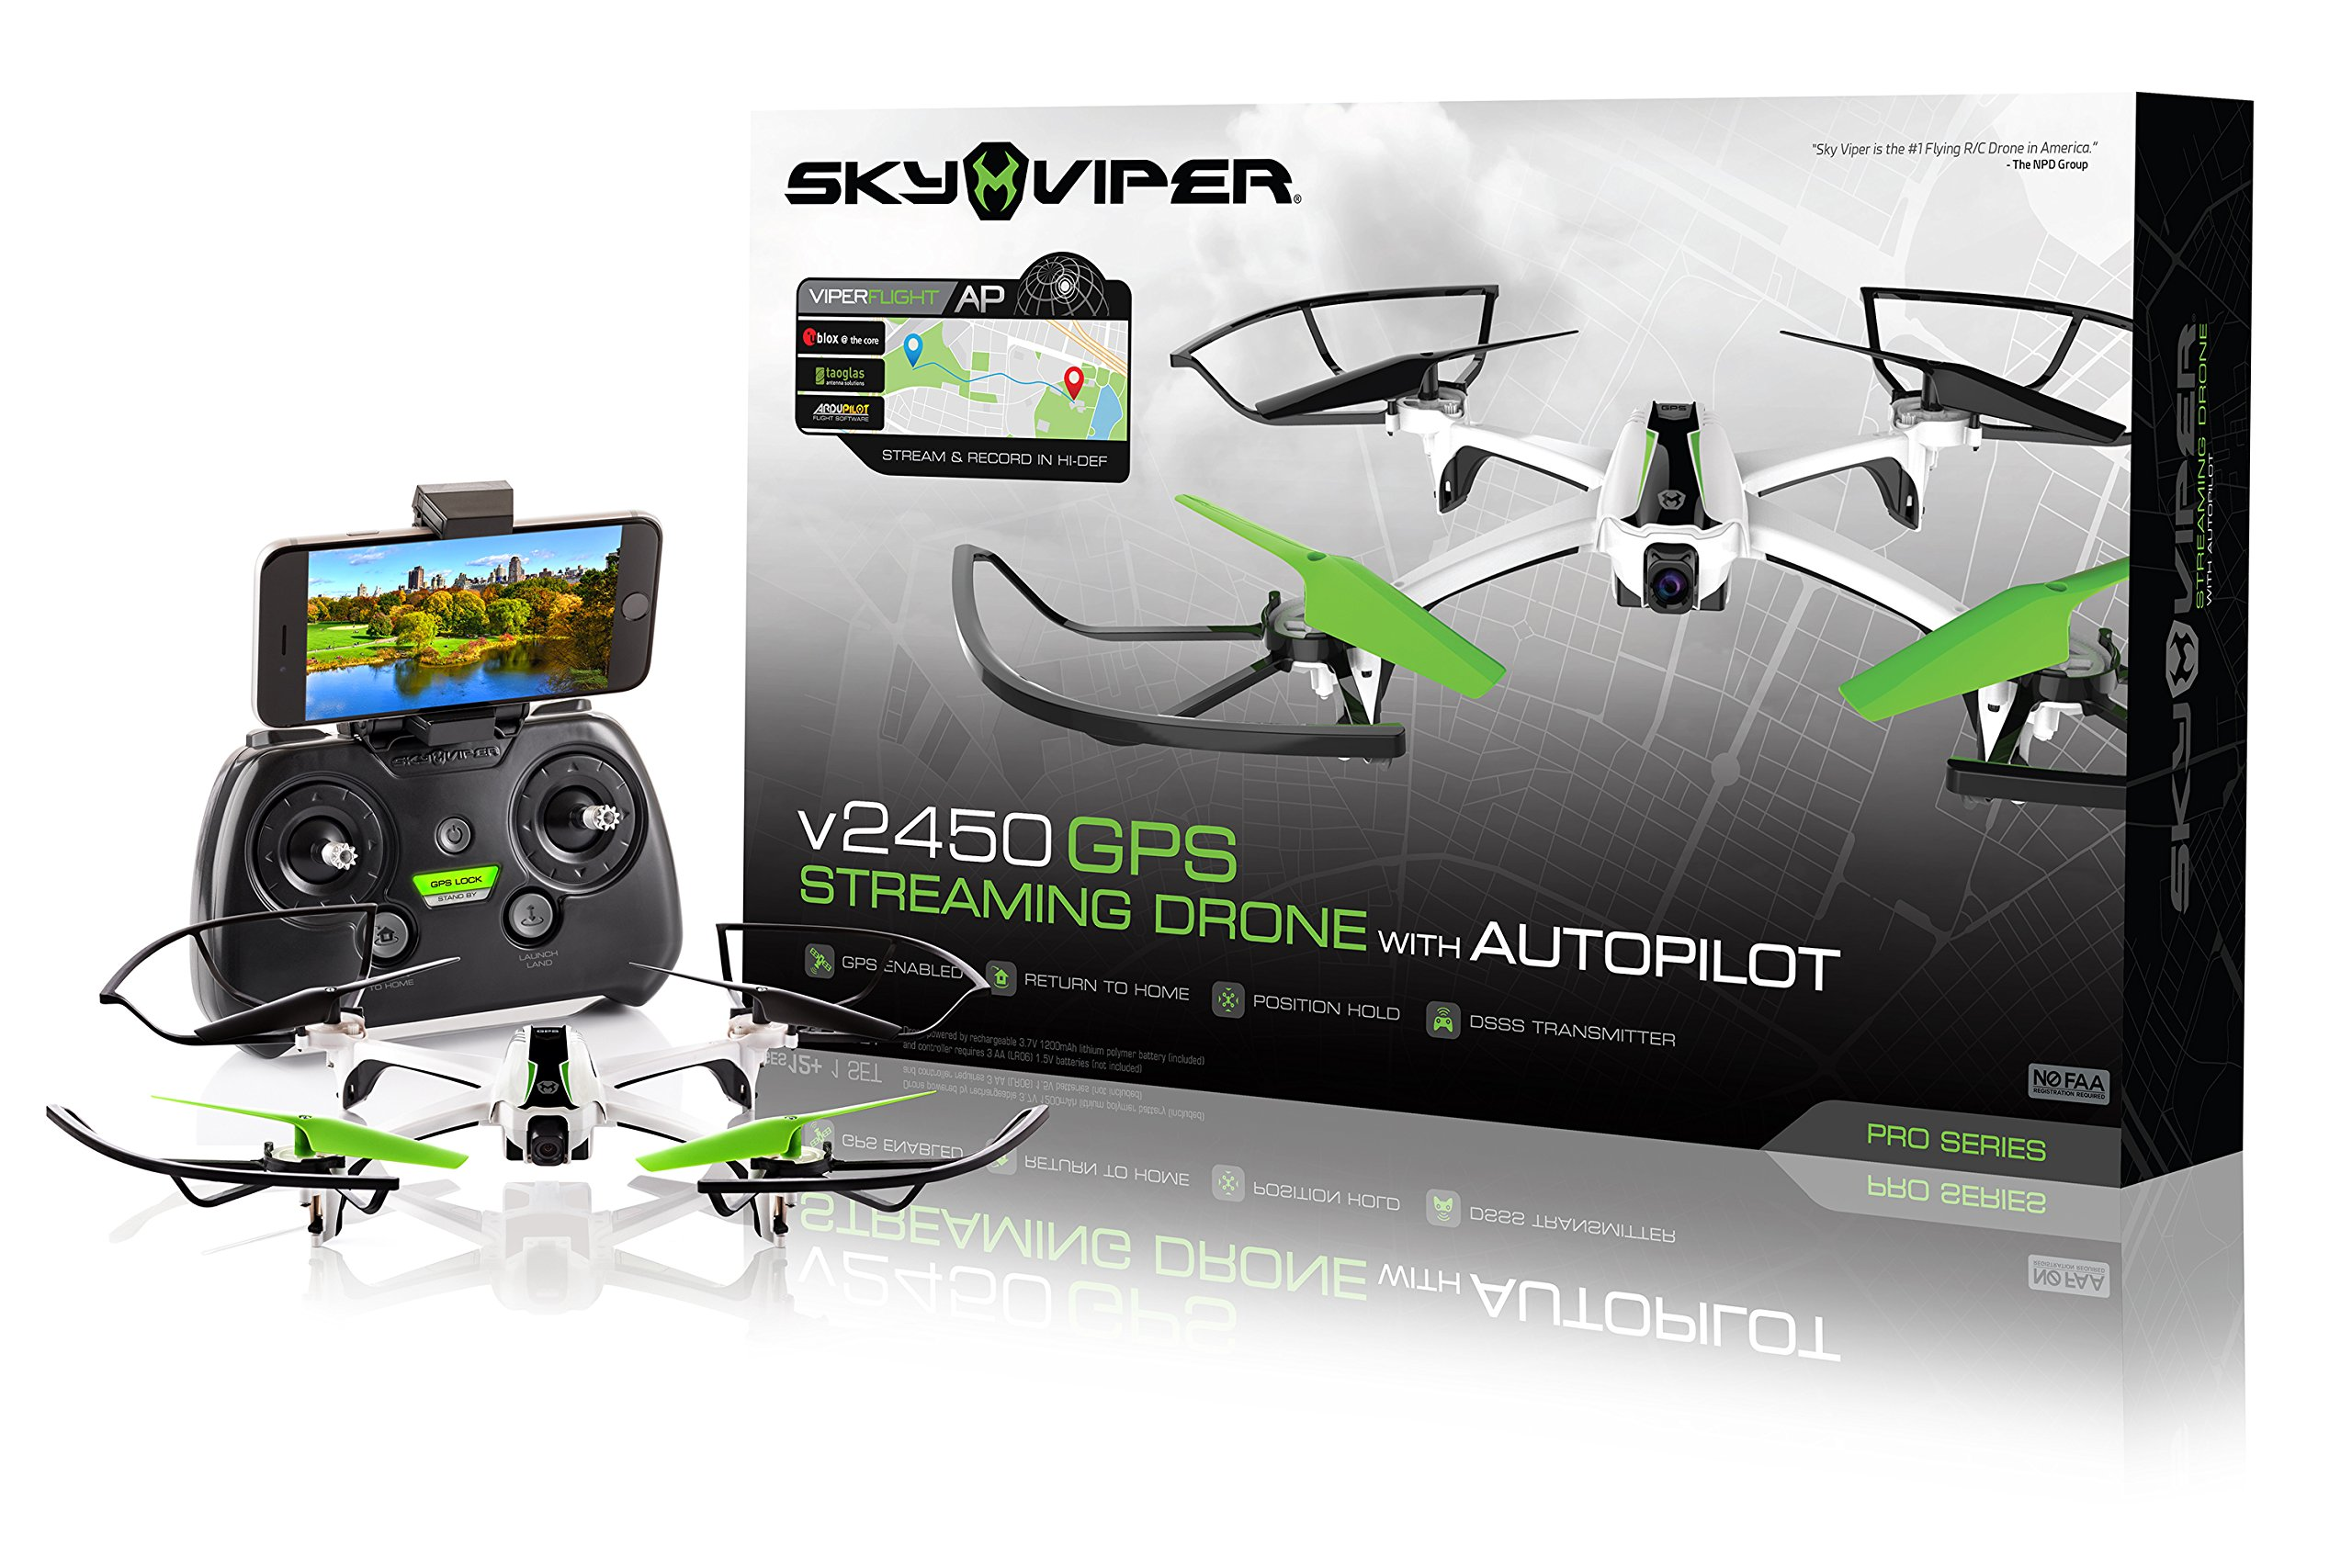 Sky Viper v2450GPS Drone with Autopilot and Gps by Sky Viper